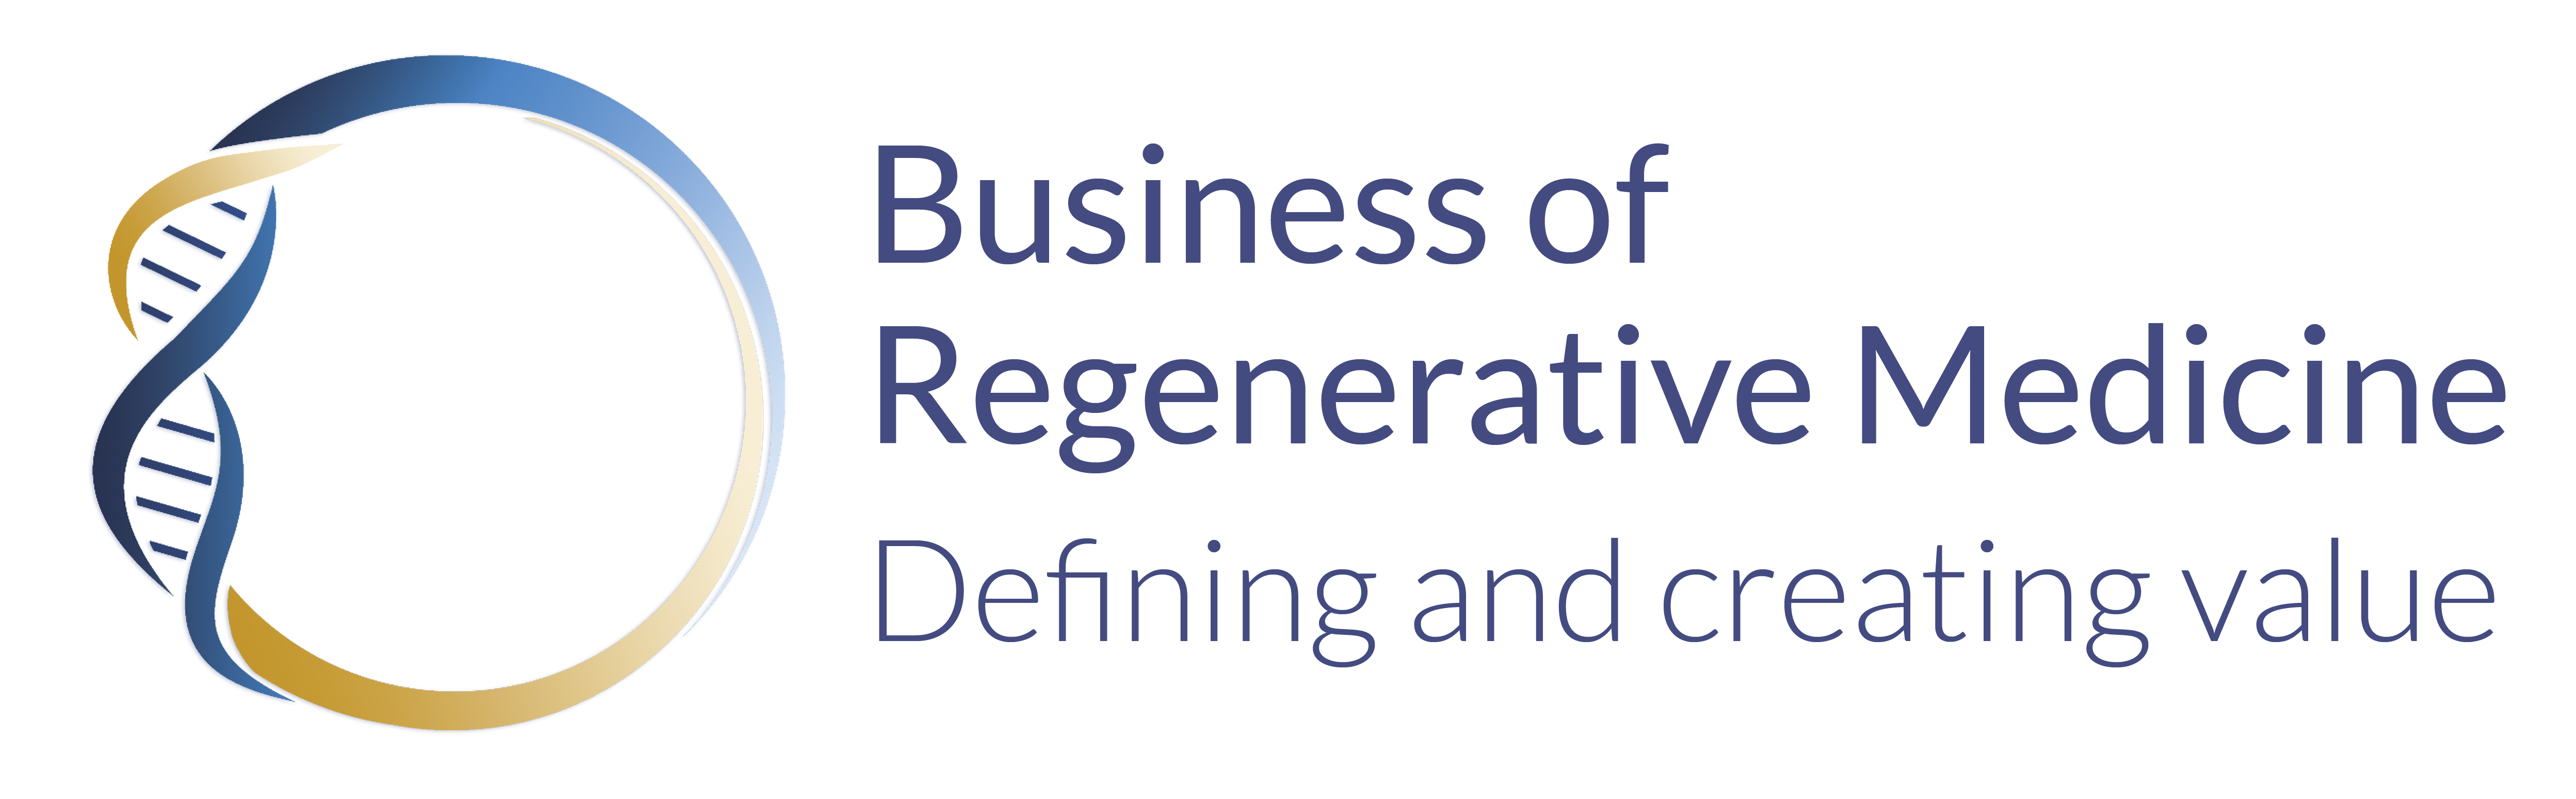 Business of Regenerative Medicine 2019: Defining and creating value